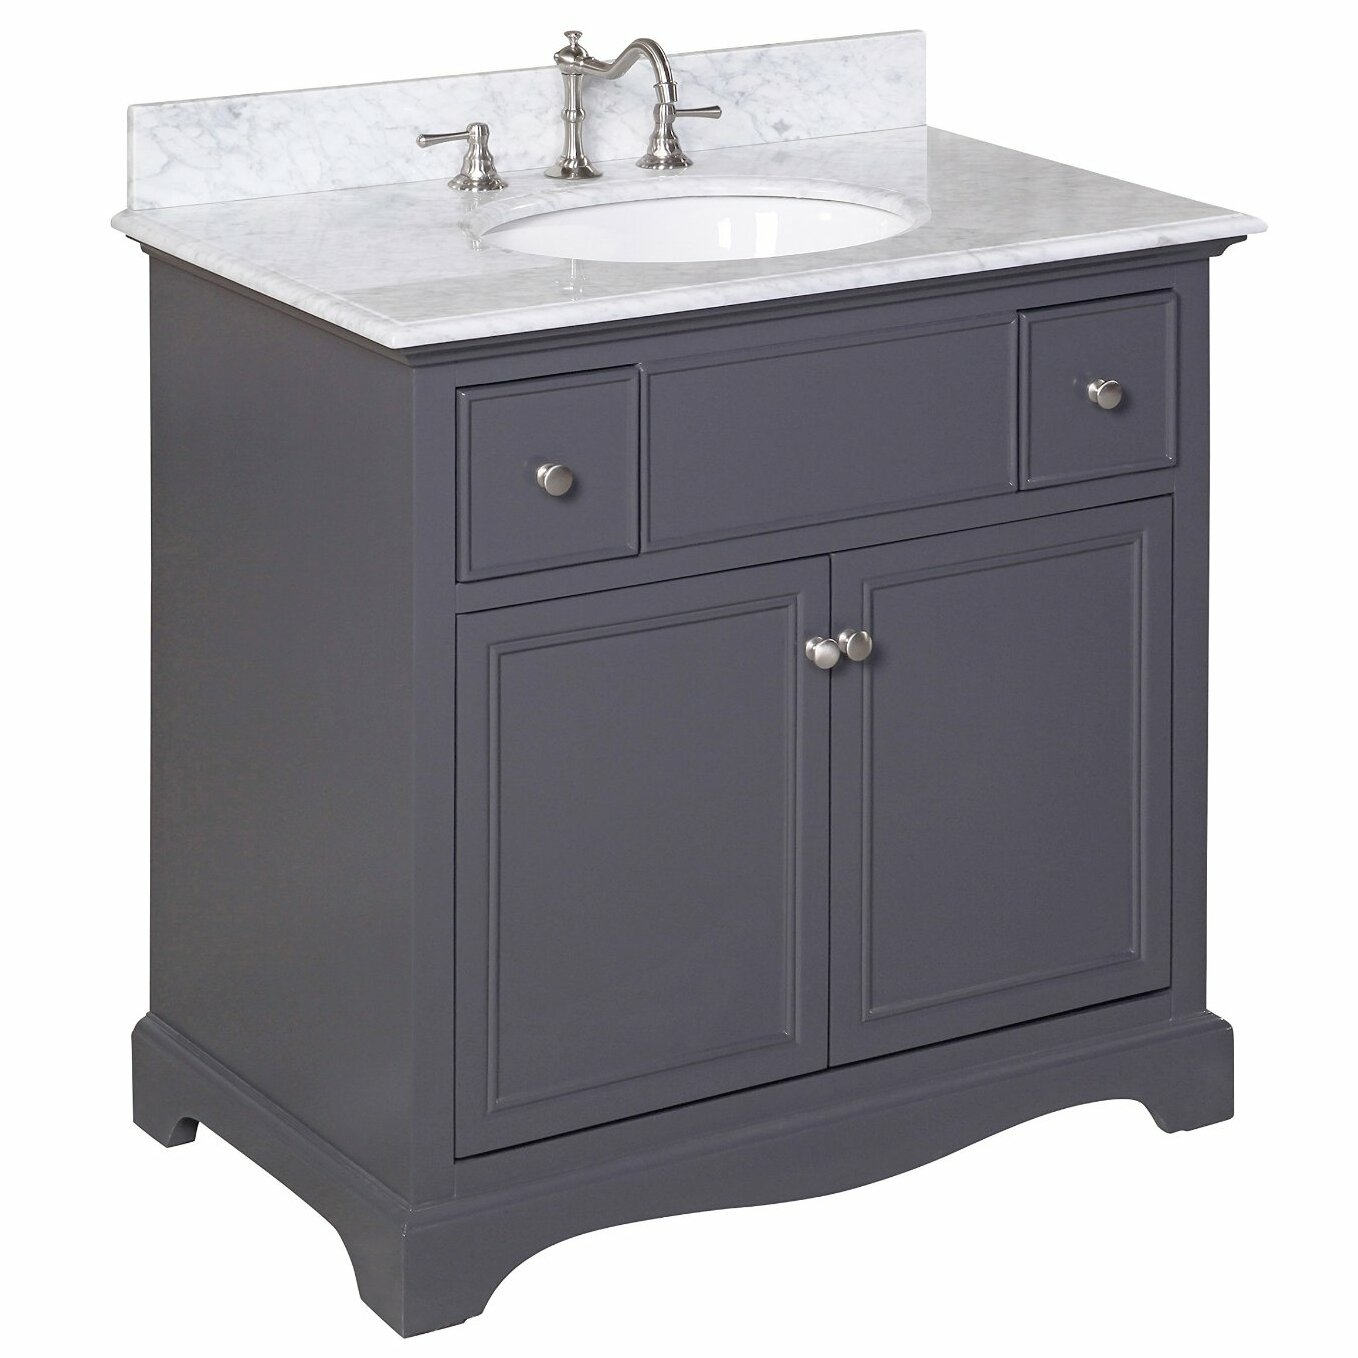 Kbc emily 36 single sink bathroom vanity set wayfair Bathroom sink and vanity sets